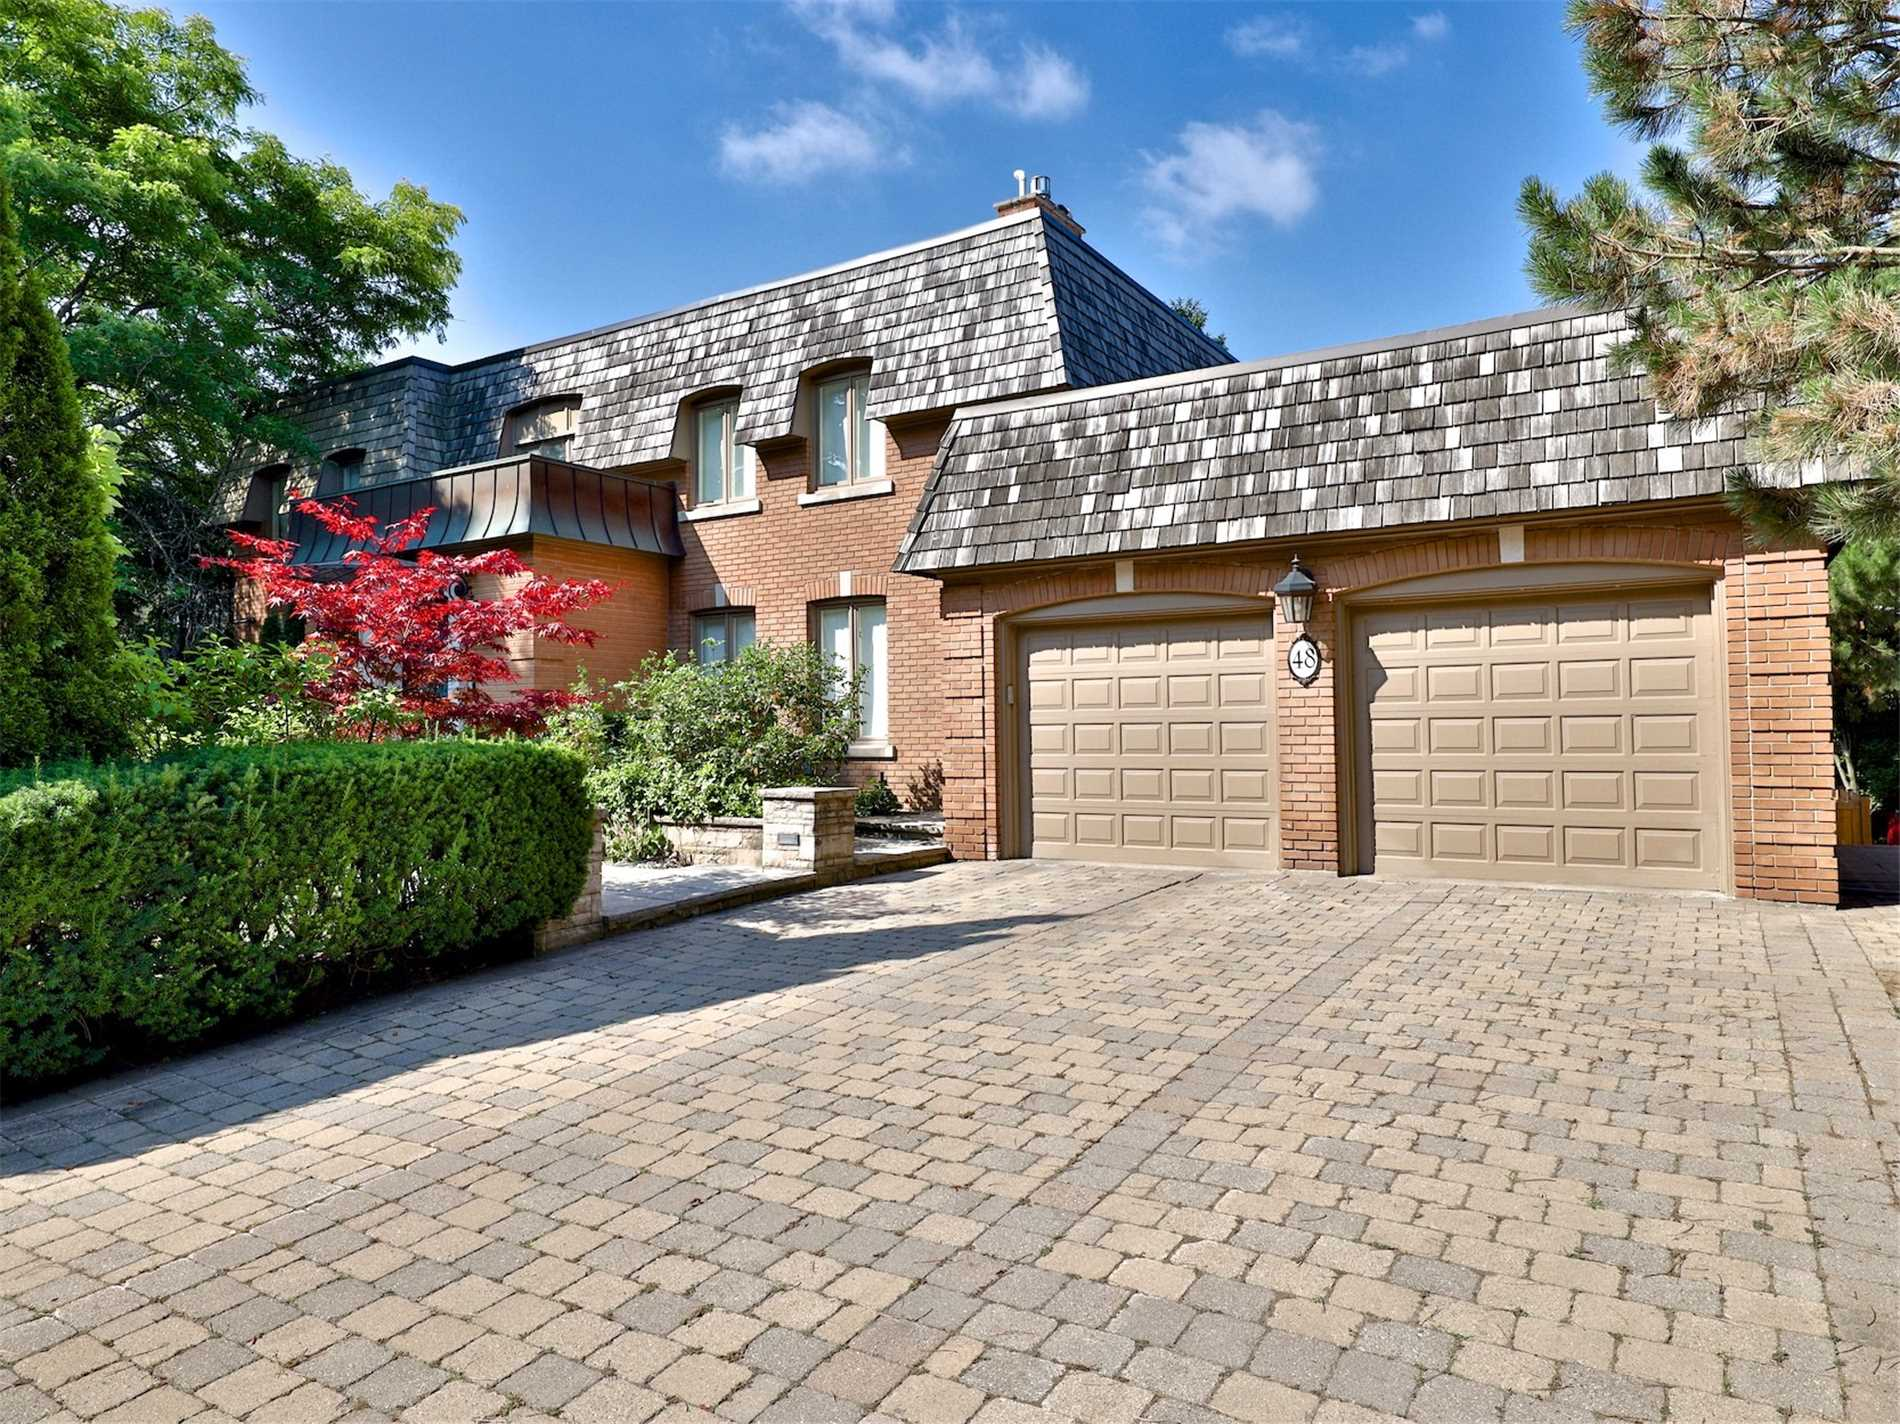 48 Sandfield Rd, Toronto, Ontario M3B3K1, 4 Bedrooms Bedrooms, 9 Rooms Rooms,6 BathroomsBathrooms,Detached,For Sale,Sandfield,C4838463